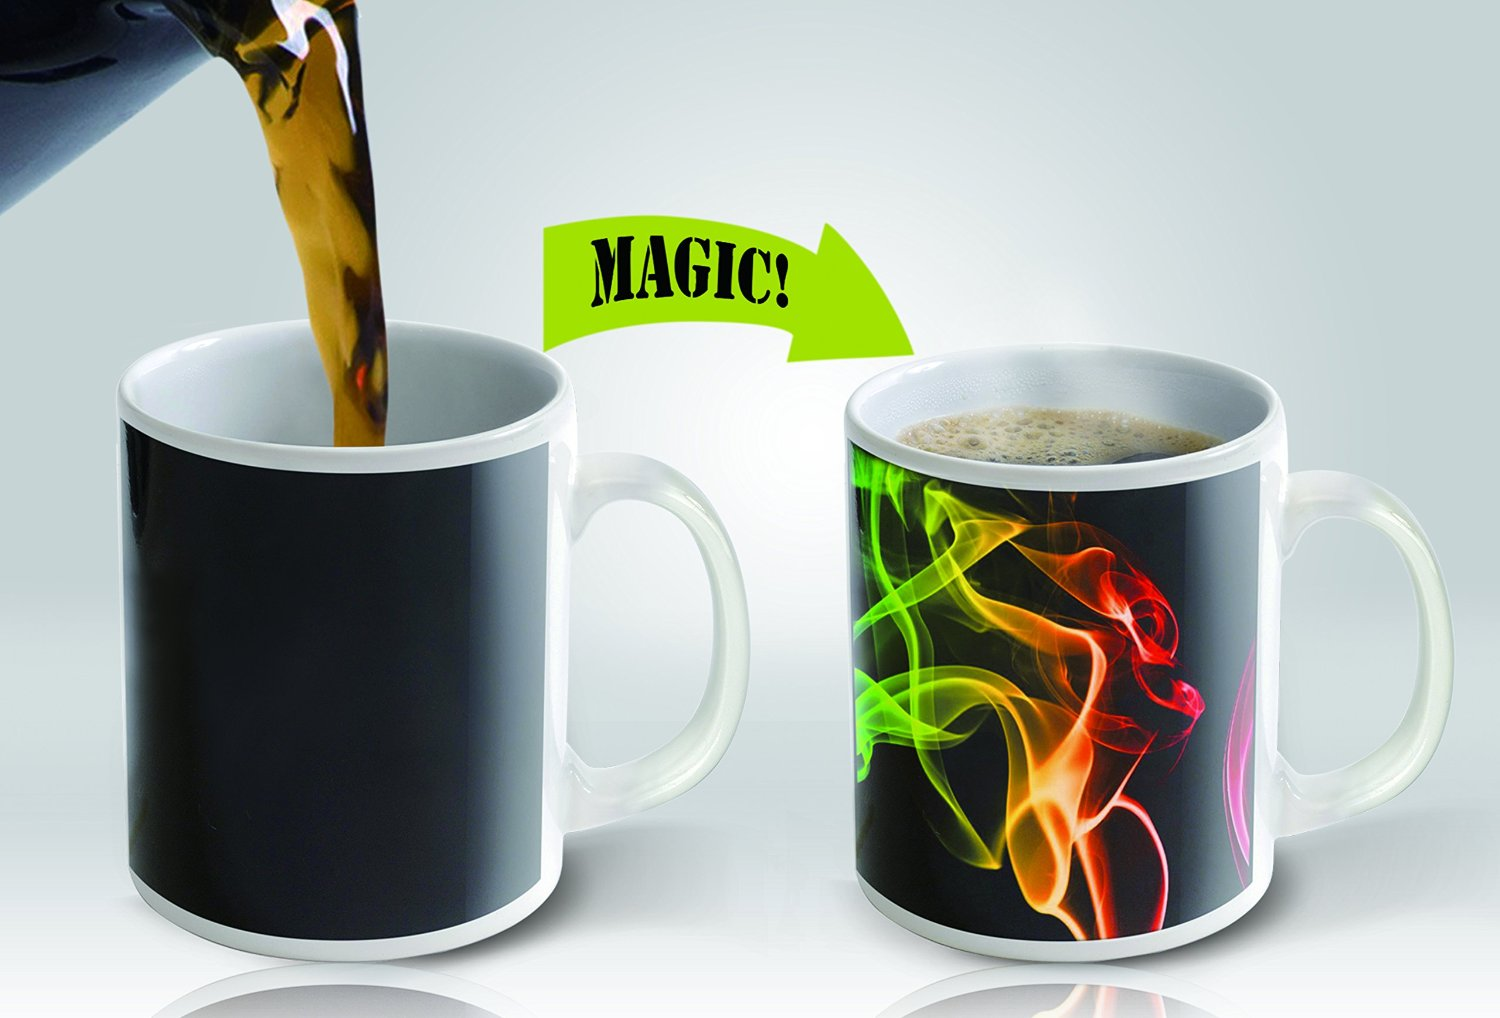 Variation 6w Ifot Mcto Of Cortunex Amazing New Heat Sensitive Color Changing Coffee Mug Good Gift